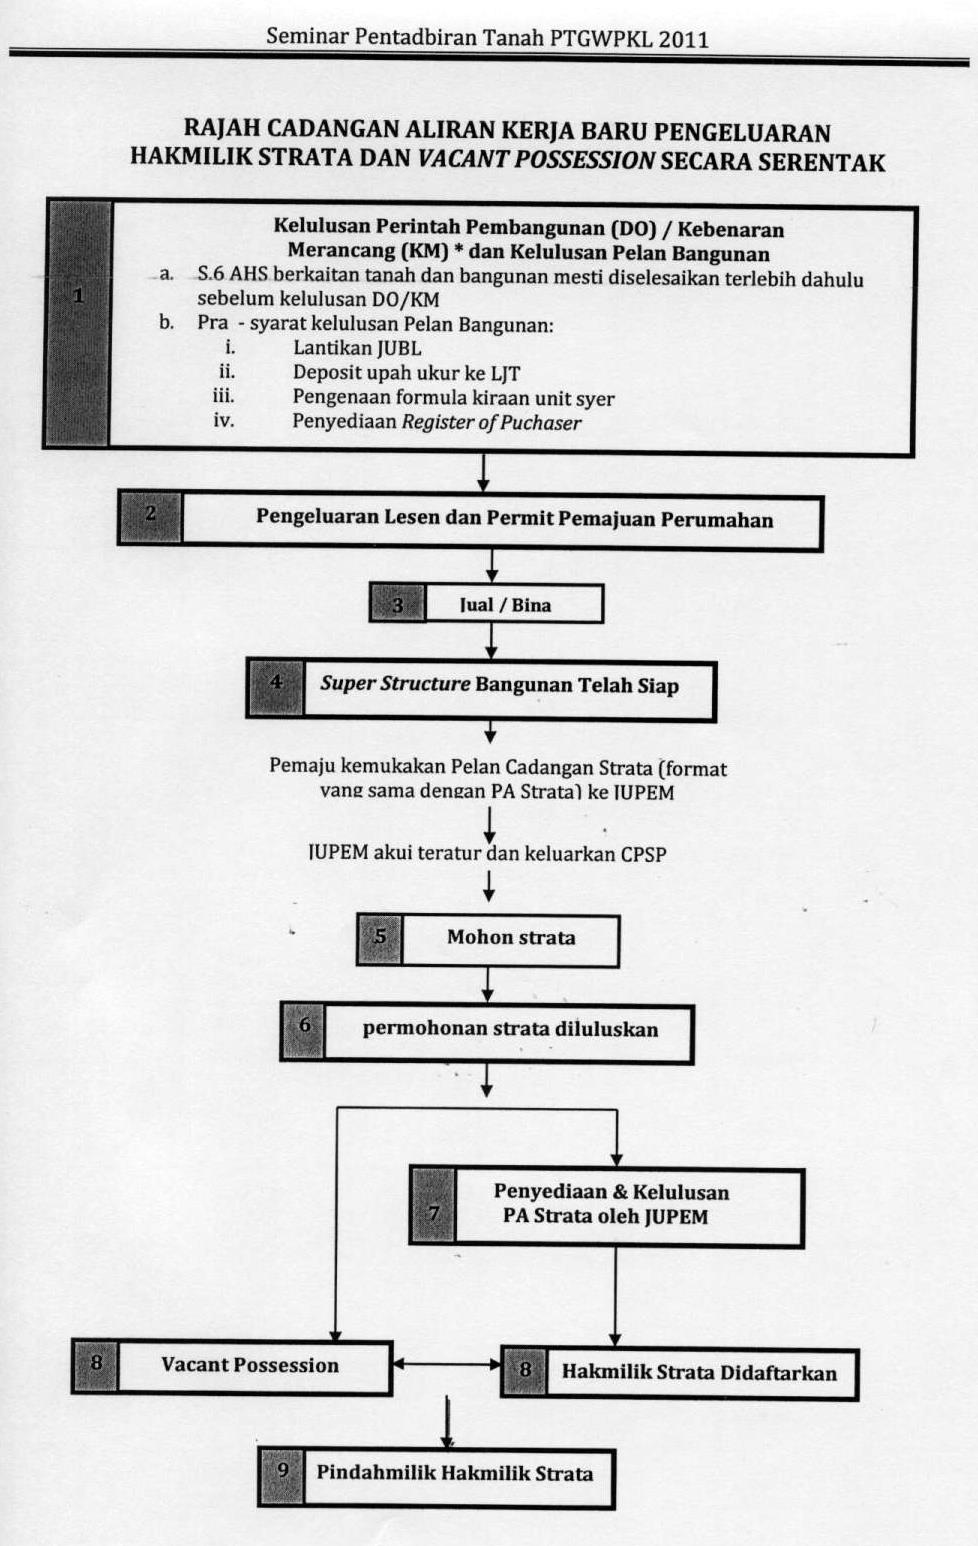 Leong dei kun ldk 2011 flowchart for strata title with vp geenschuldenfo Image collections